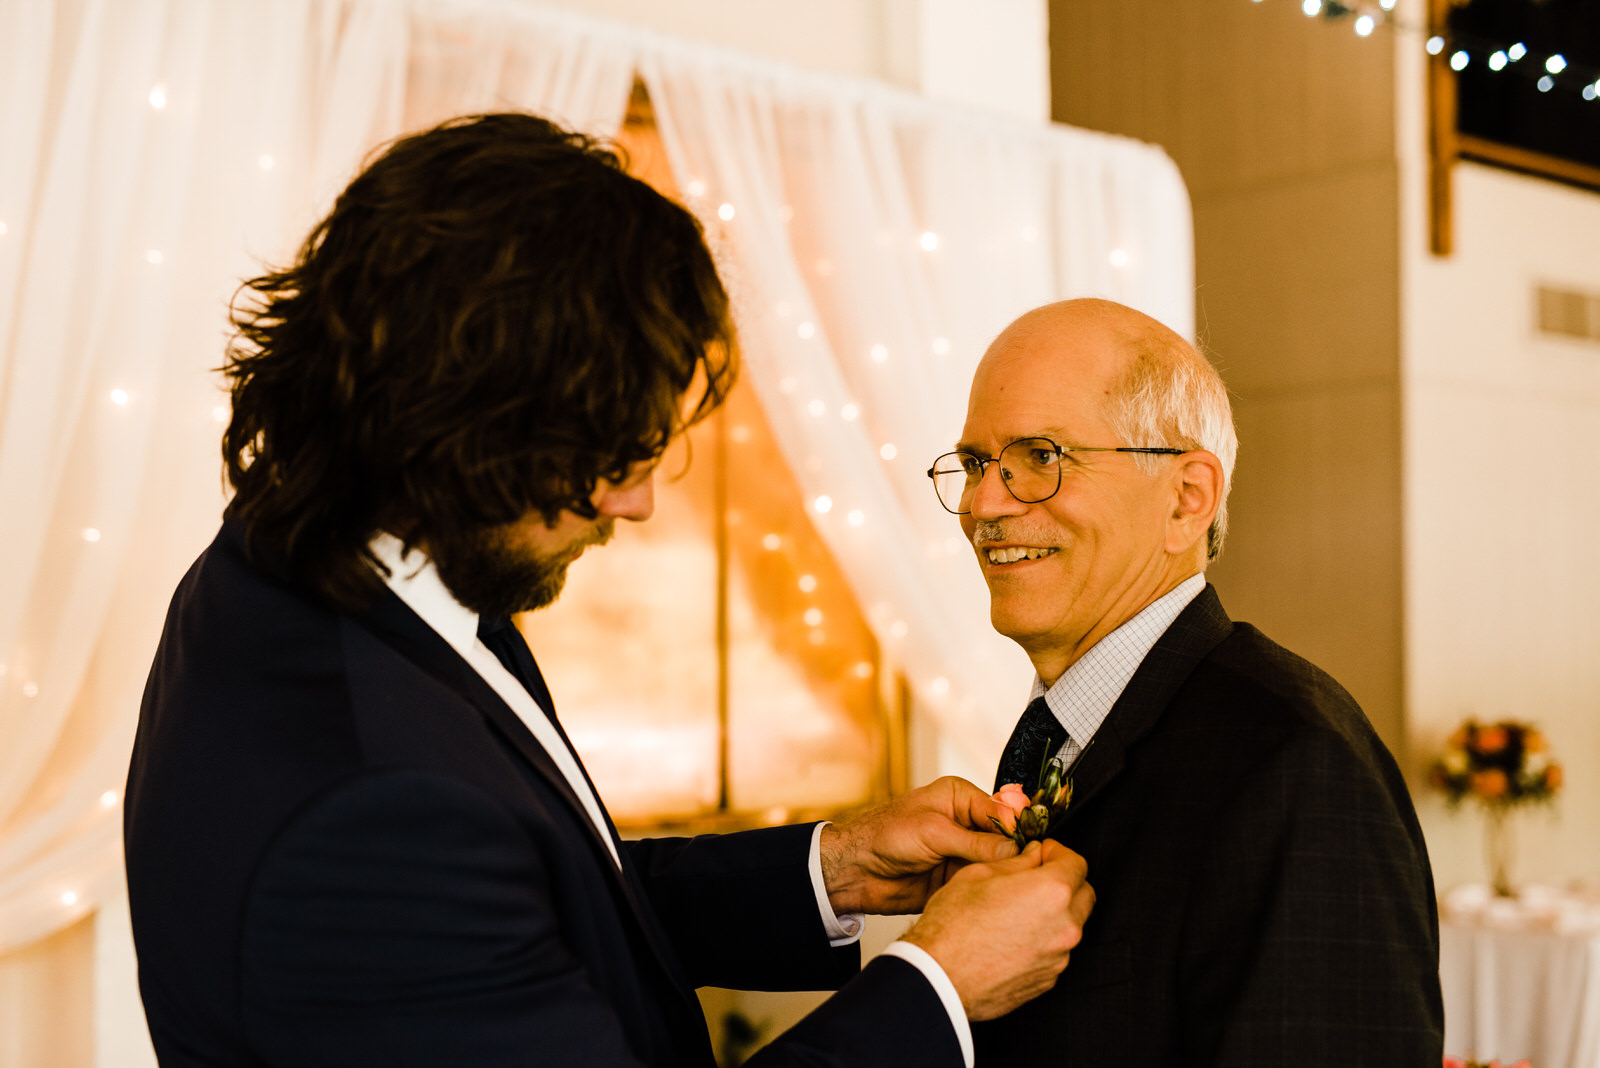 Groom pins boutonniere on dad